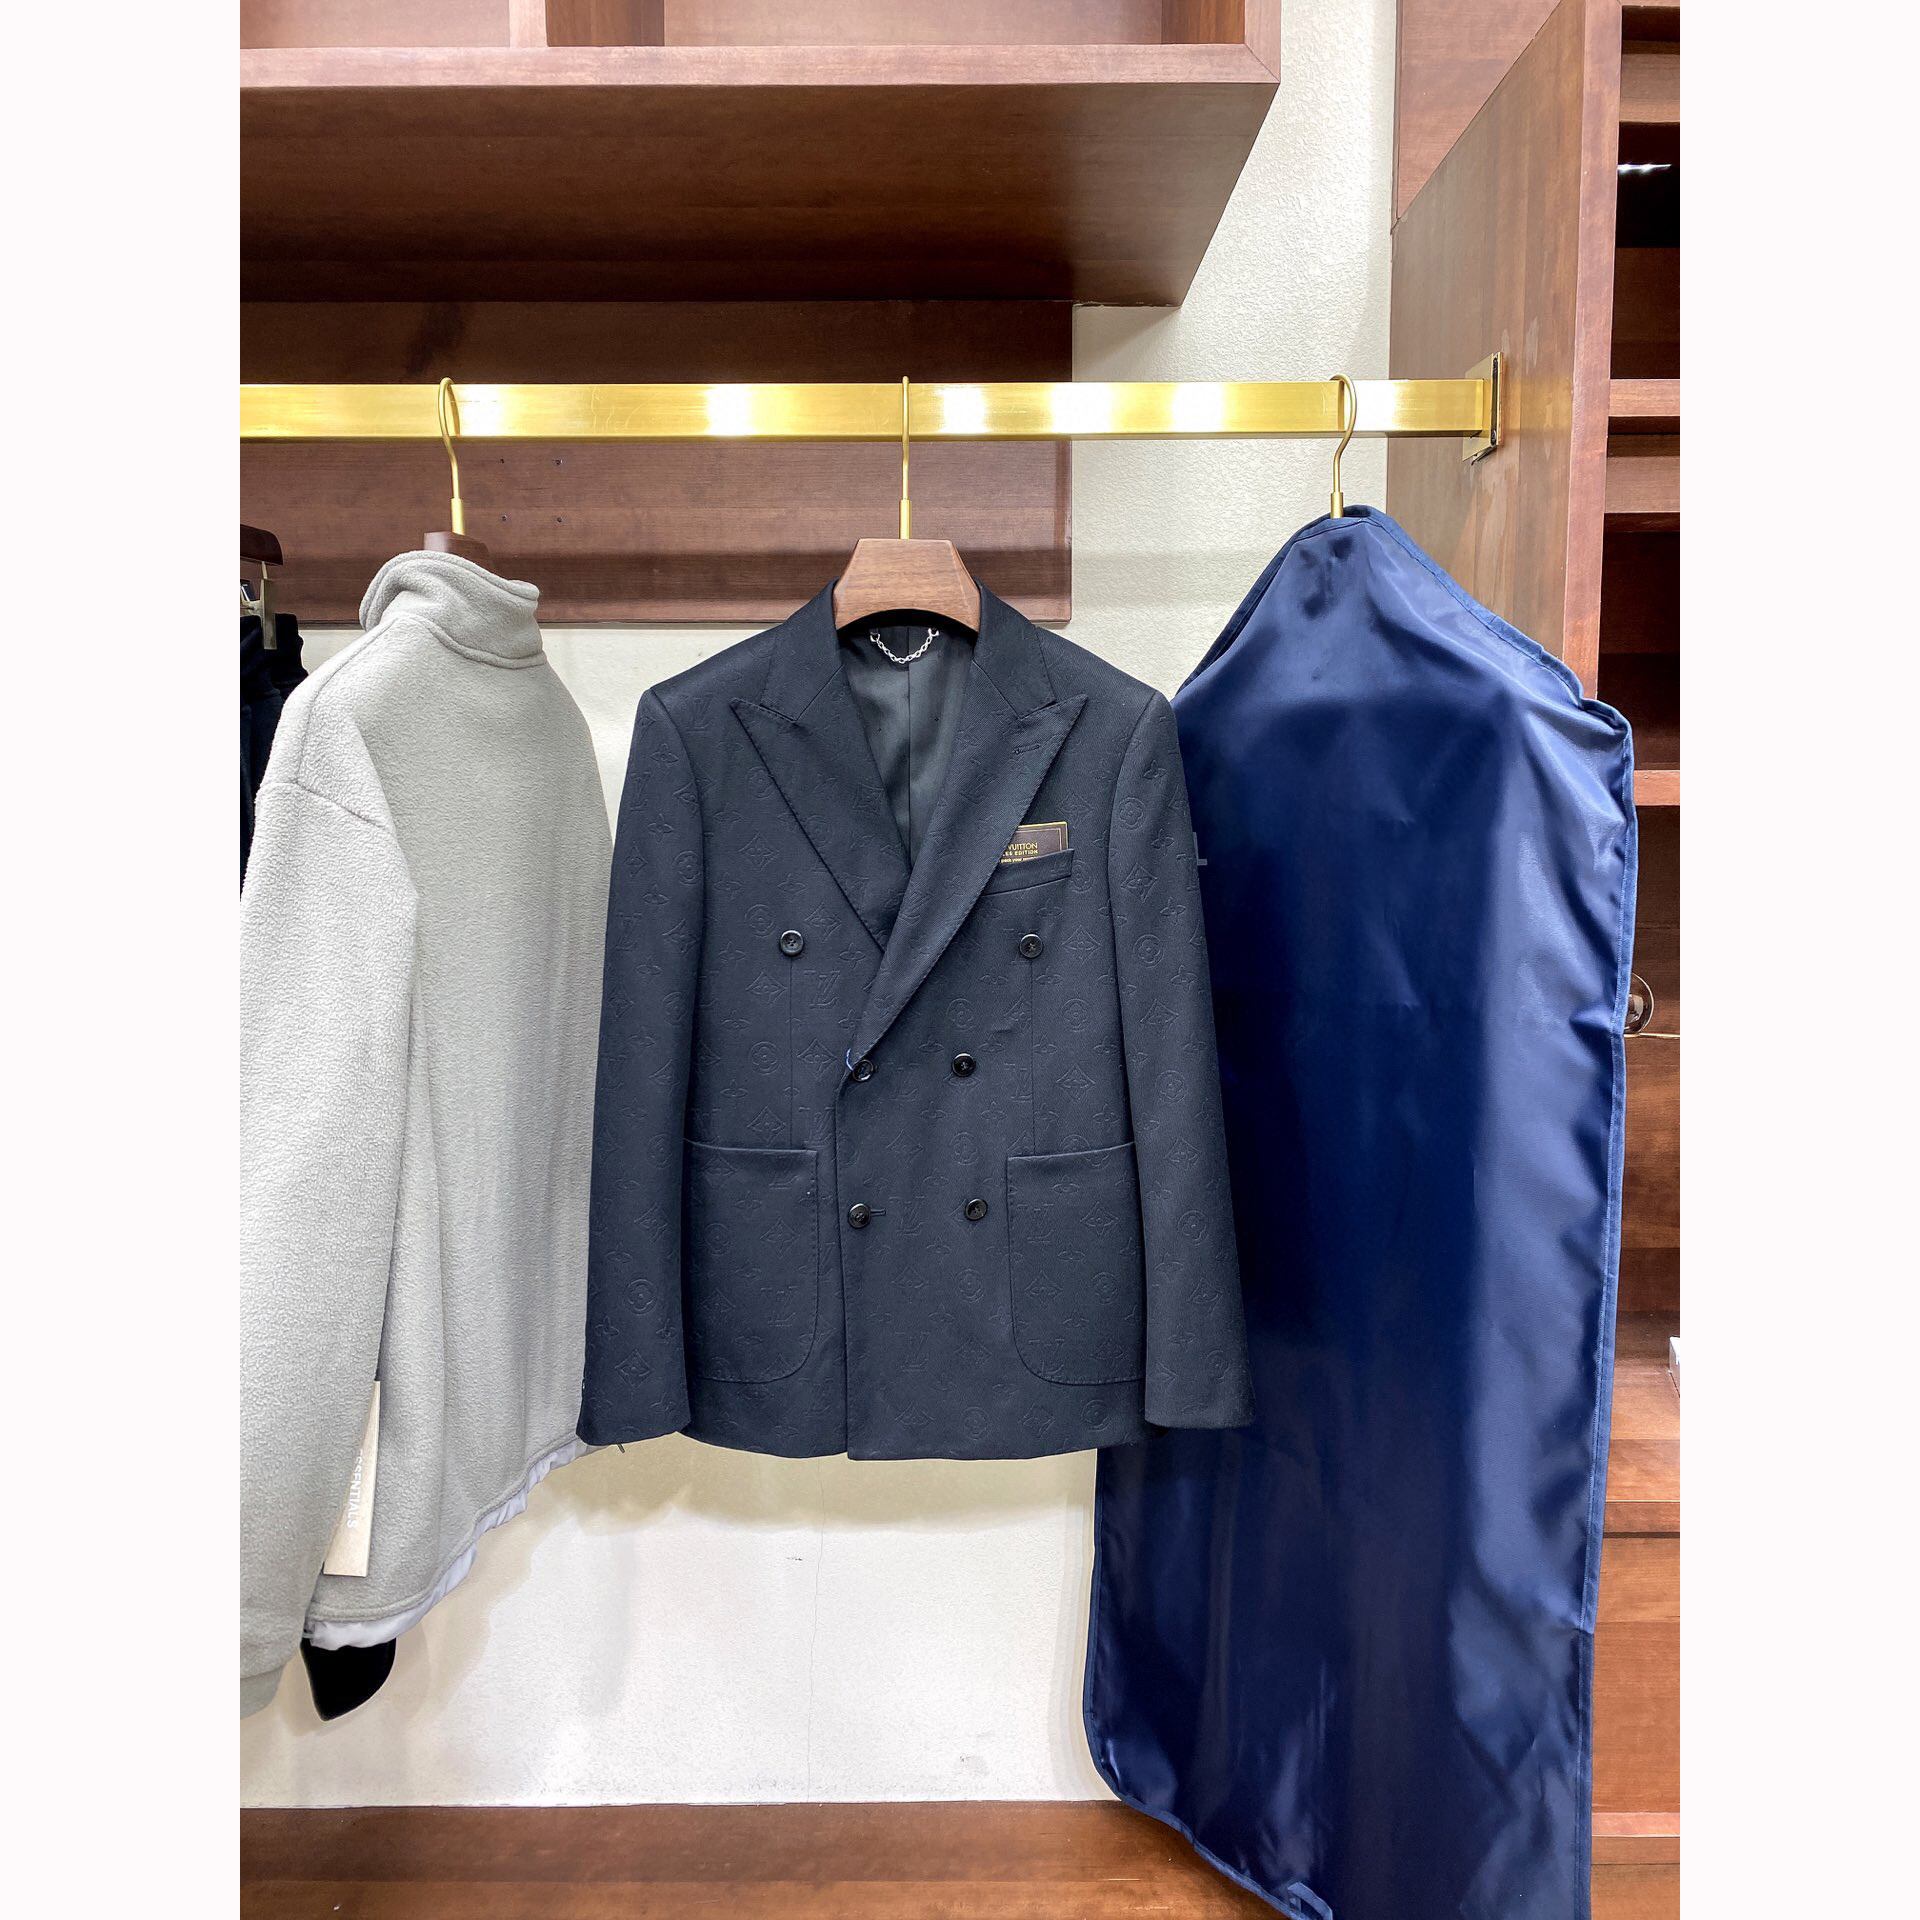 Andonaimi LU brand 2020 autumn and winter new wool double-breasted lapel classic embossed business casual suit jacket